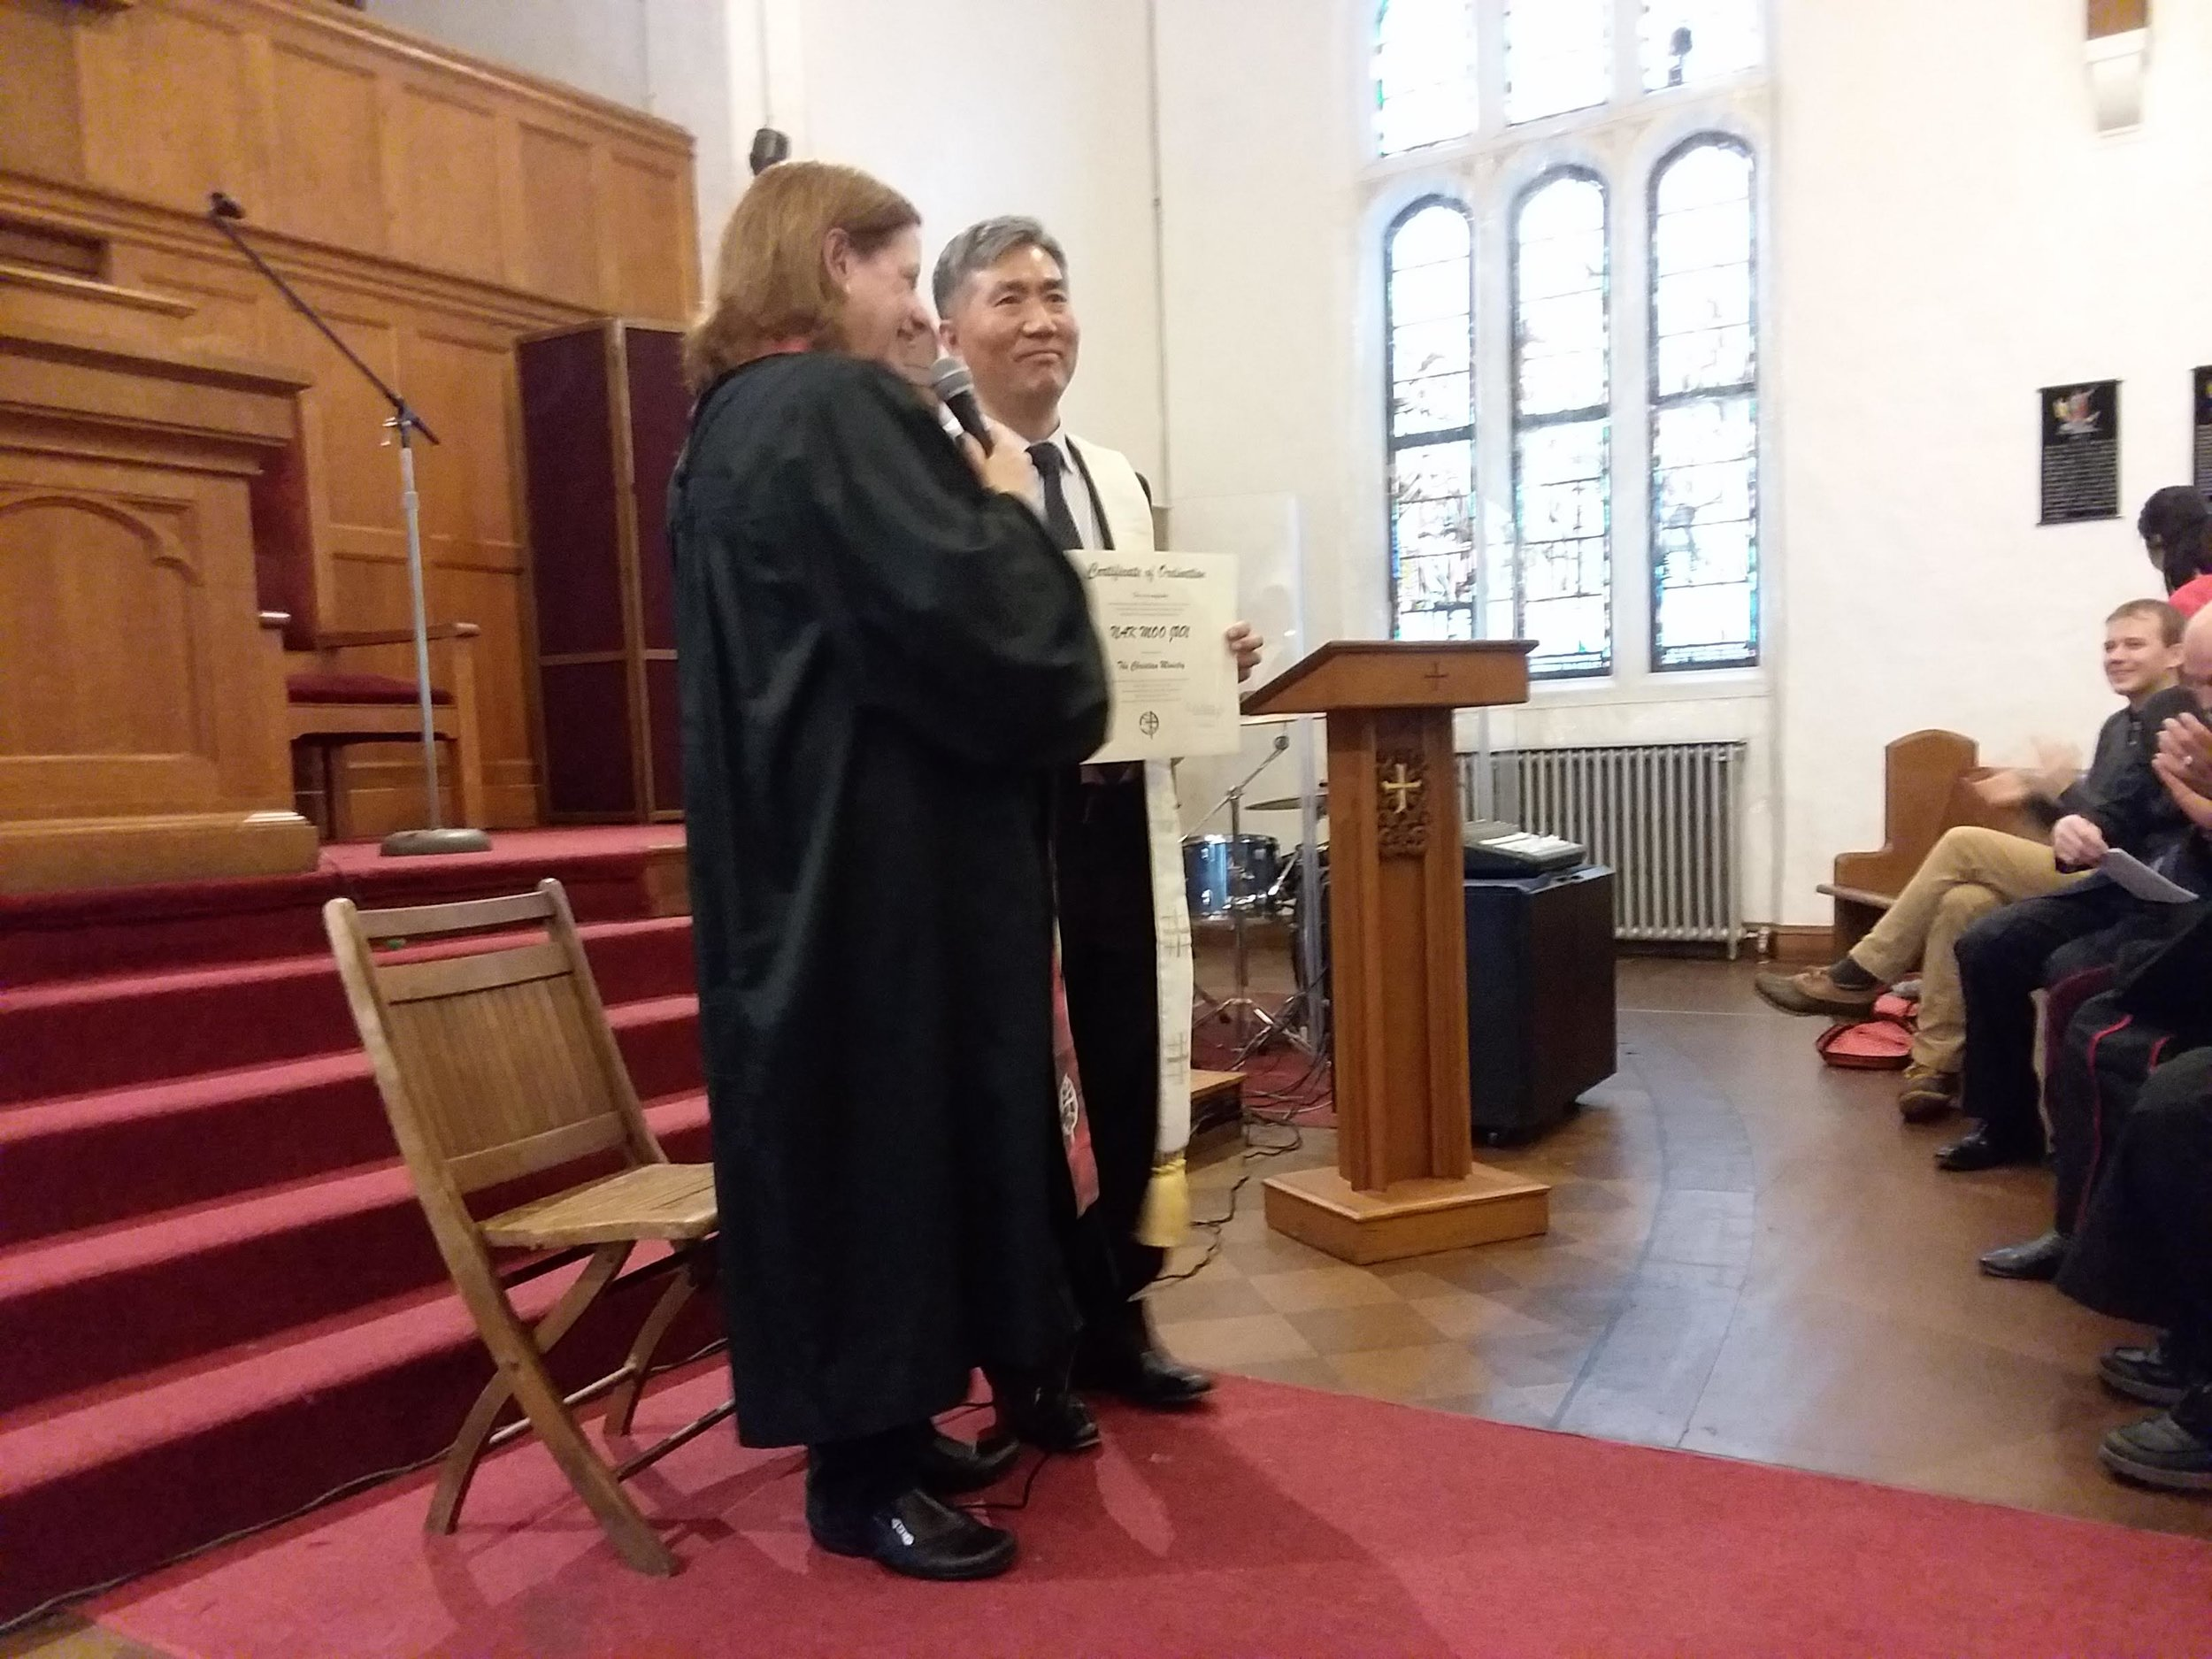 David Nakmoo Jun received his ordination certificate from Mary Day Miller, executive minister of TABCOM.